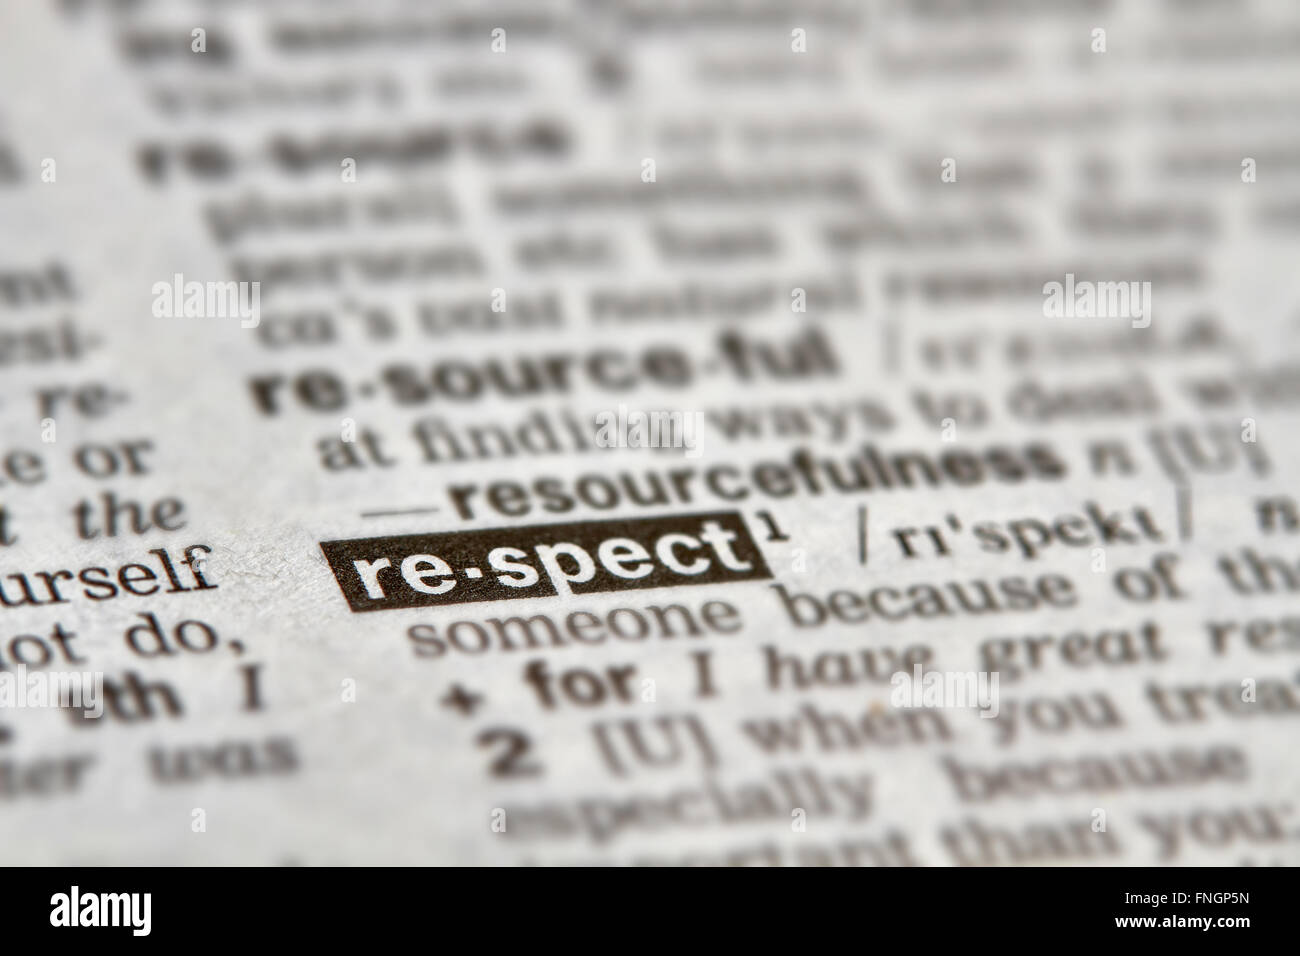 Respect Word Definition Text in Dictionary Page - Stock Image